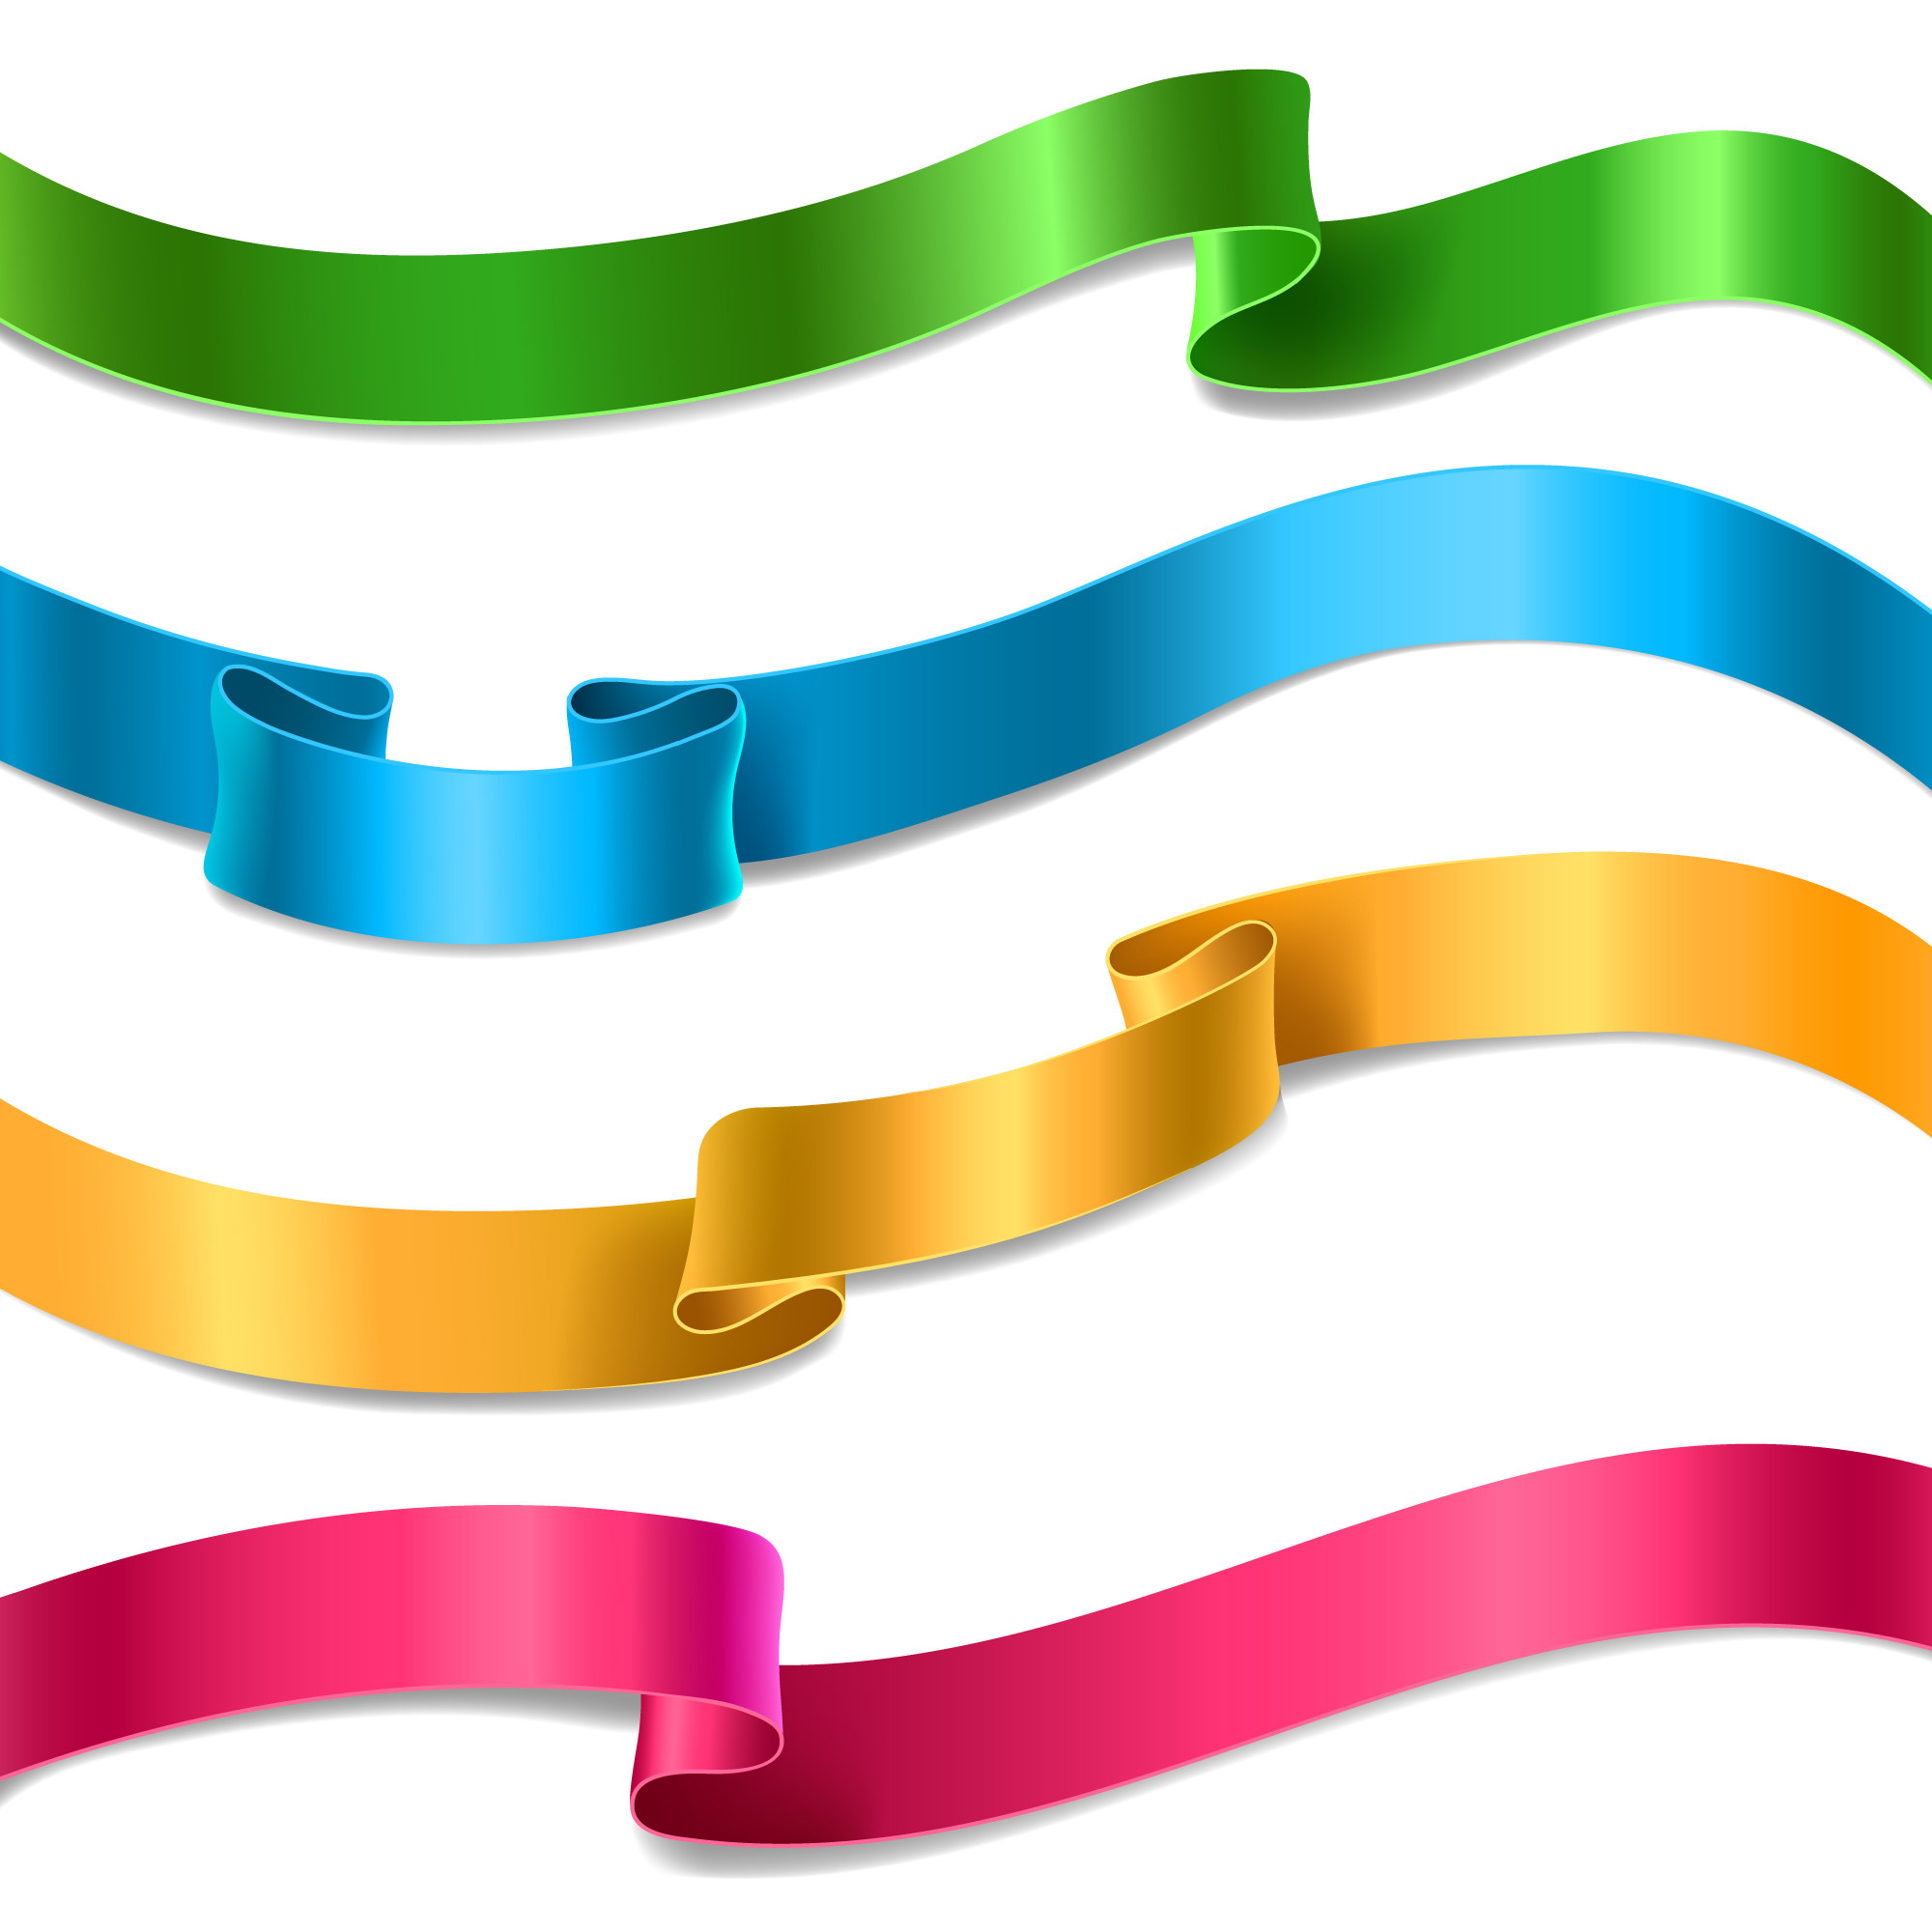 Set of flowing satin or silk ribbons in different colors.